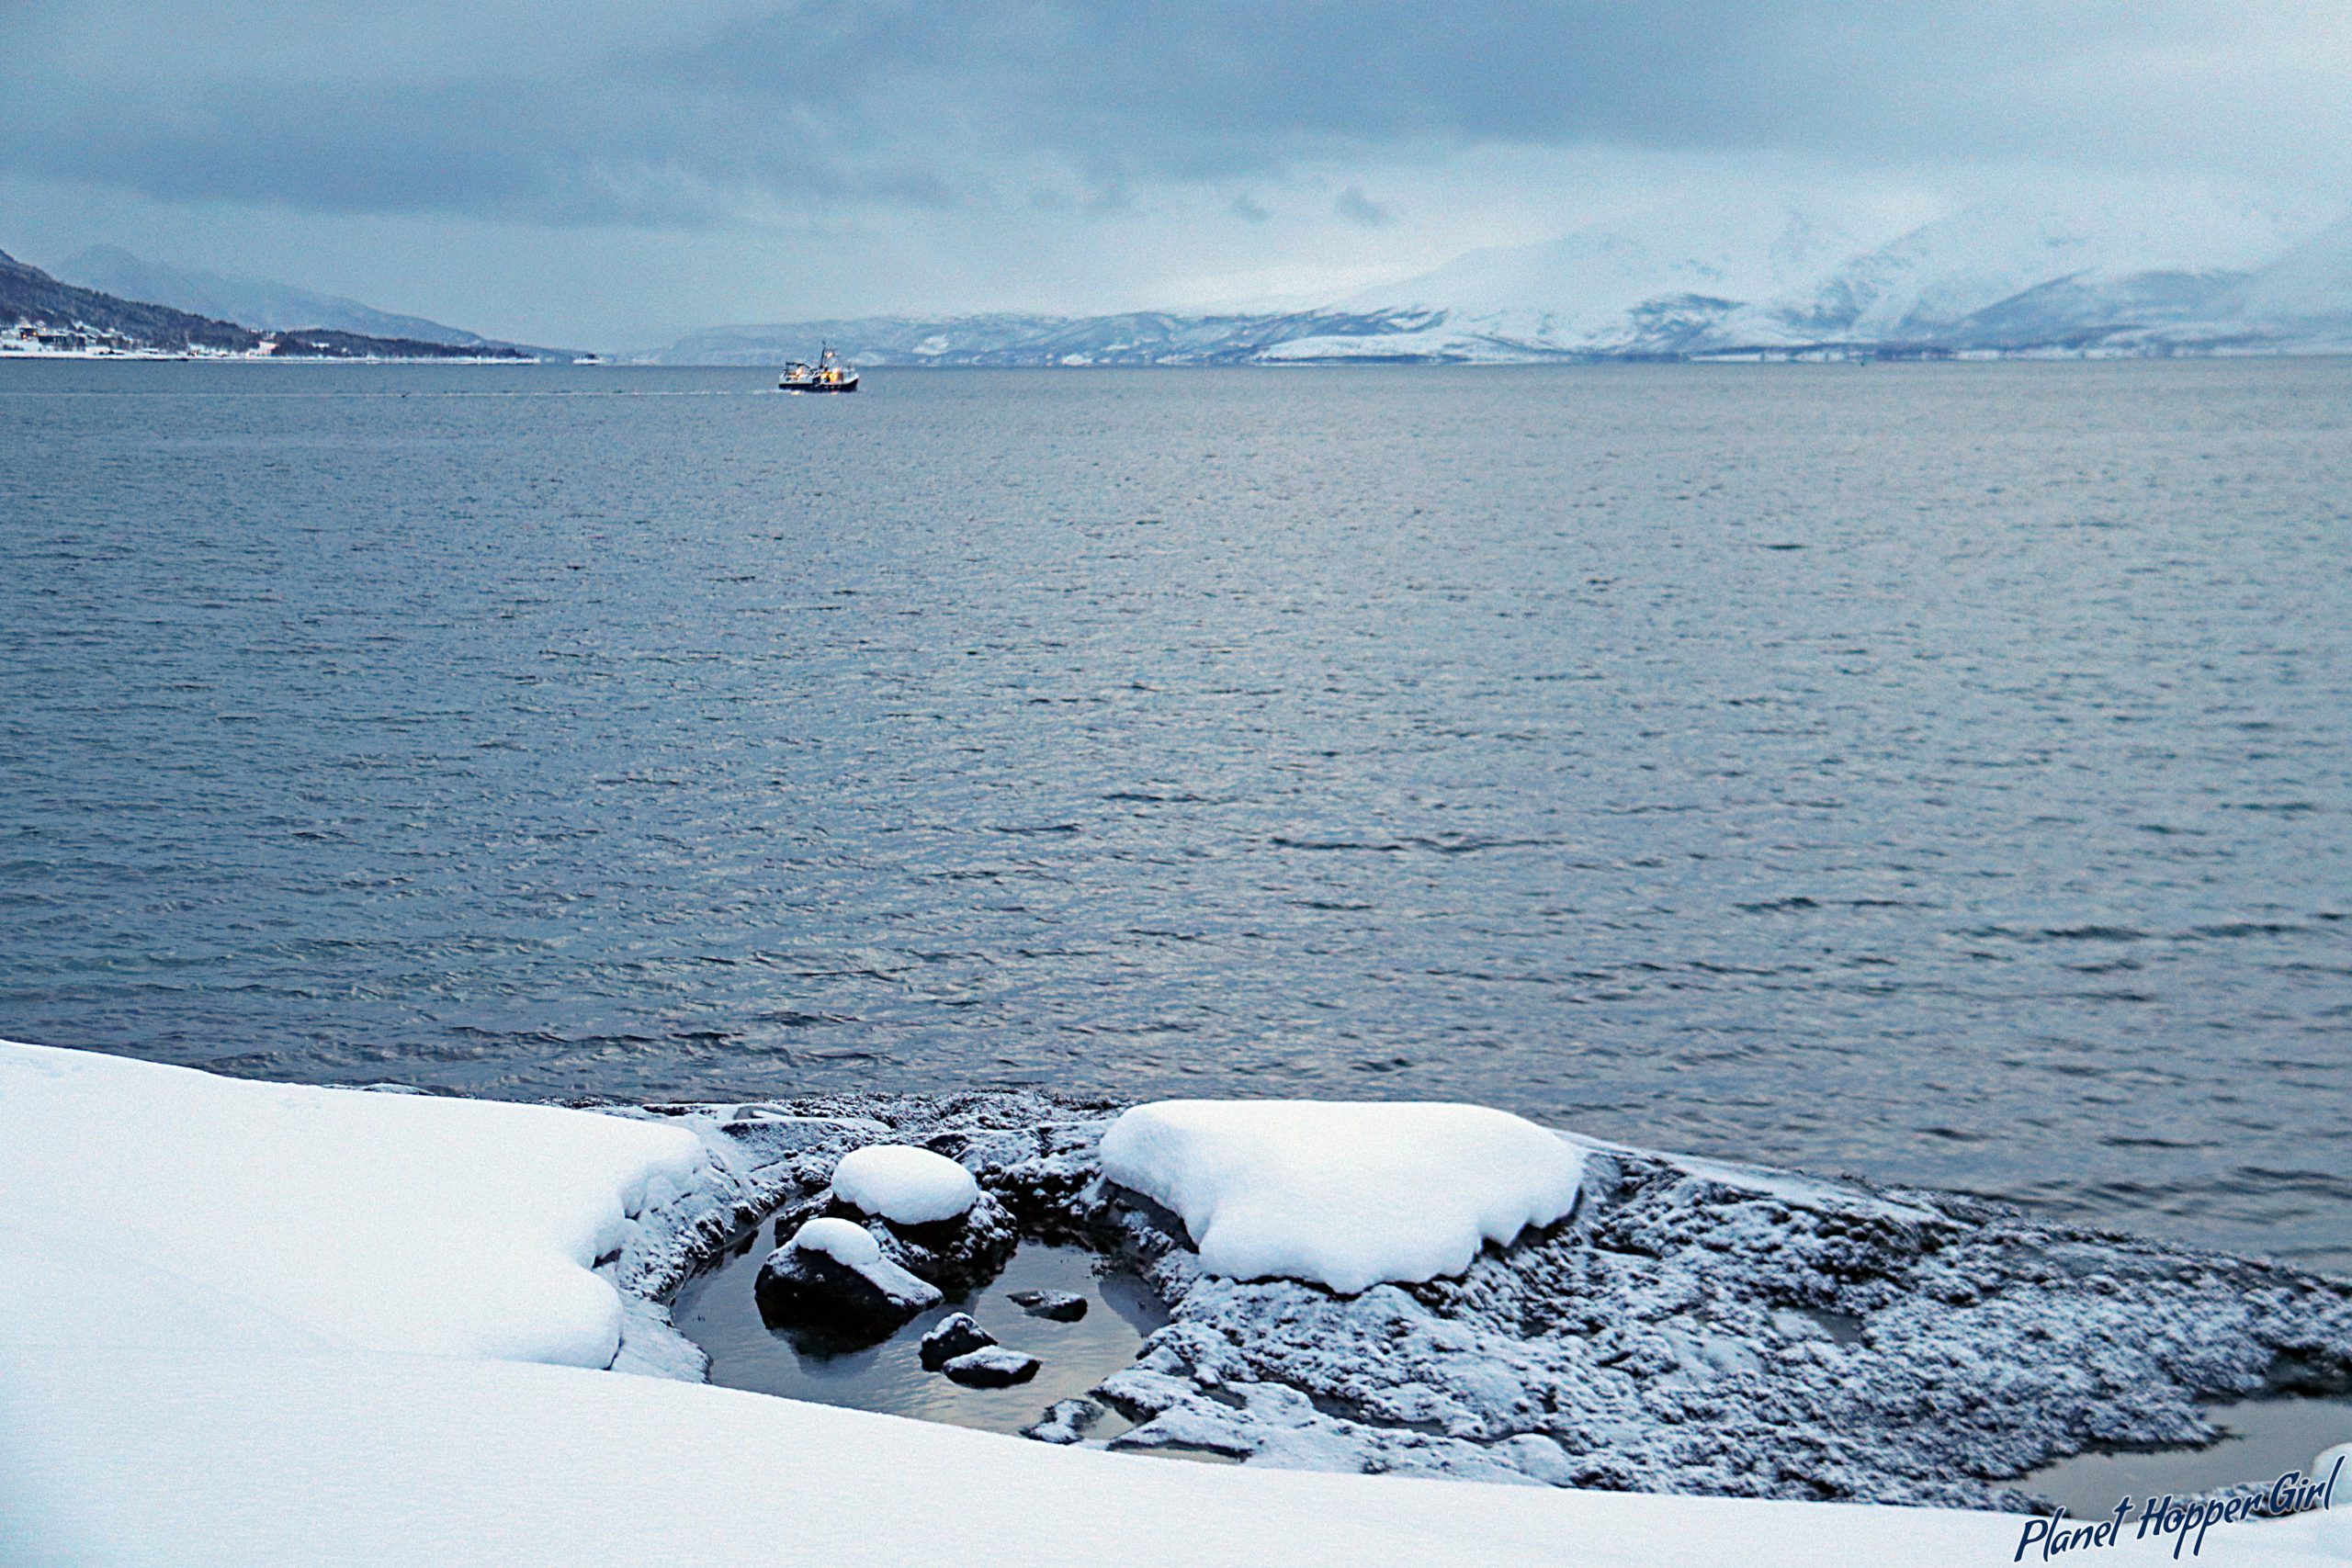 Looking over the Fjords in Tromso, Norway